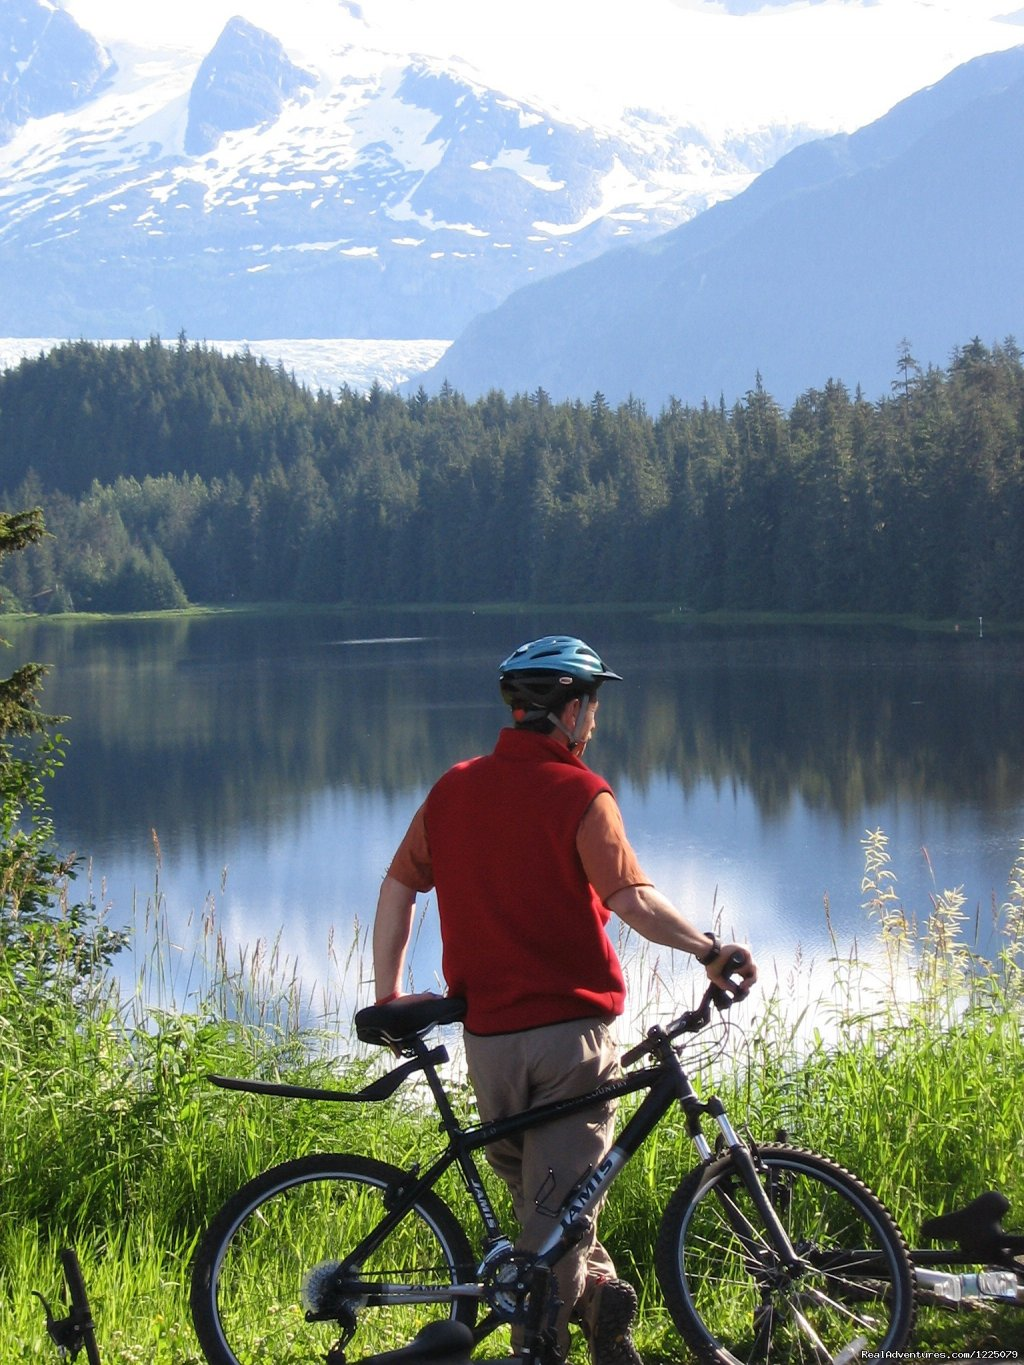 We provide affordable bike and walking tours in Juneau, AK: Bike & Brew; Bike & Tram, Downtown Walking Tour. Great equipment. Knowledgeable local guides. We also have bike rentals: road, mountain, cruisers.